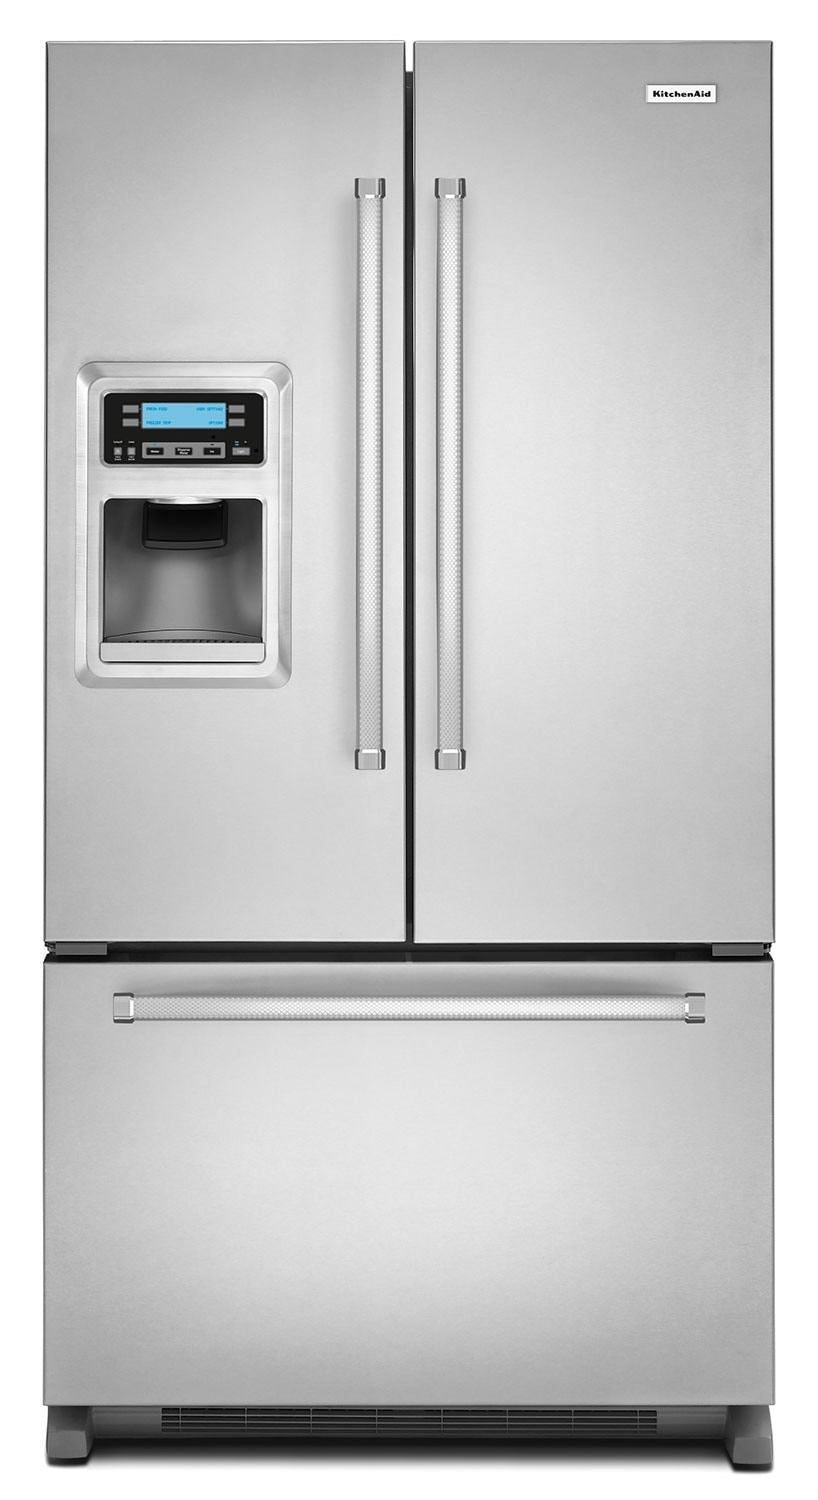 KitchenAid Stainless Steel French Door Refrigerator (20 Cu. Ft.) - KRFC400ESS